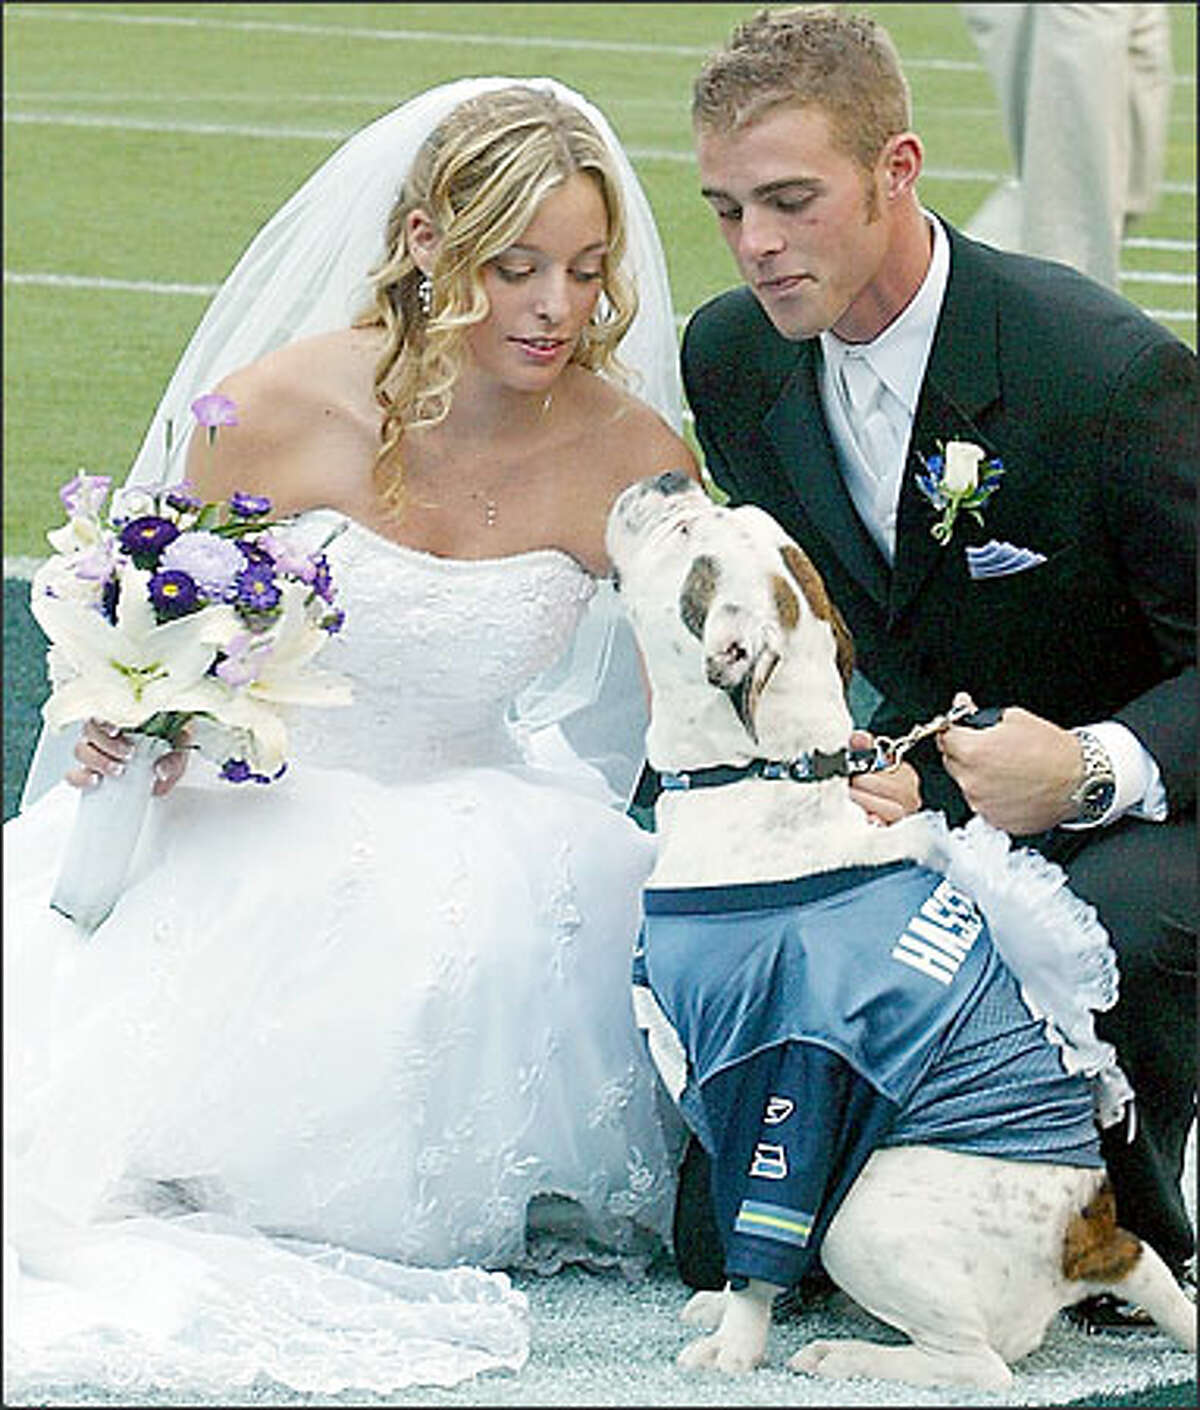 With Fumbles, their 8-month-old bulldog, serving as ring bearer, rabid Seattle Seahawks fans Chris Lundberg and Alexis Russo were married Sunday night in the first-ever wedding on the field at Qwest Field.